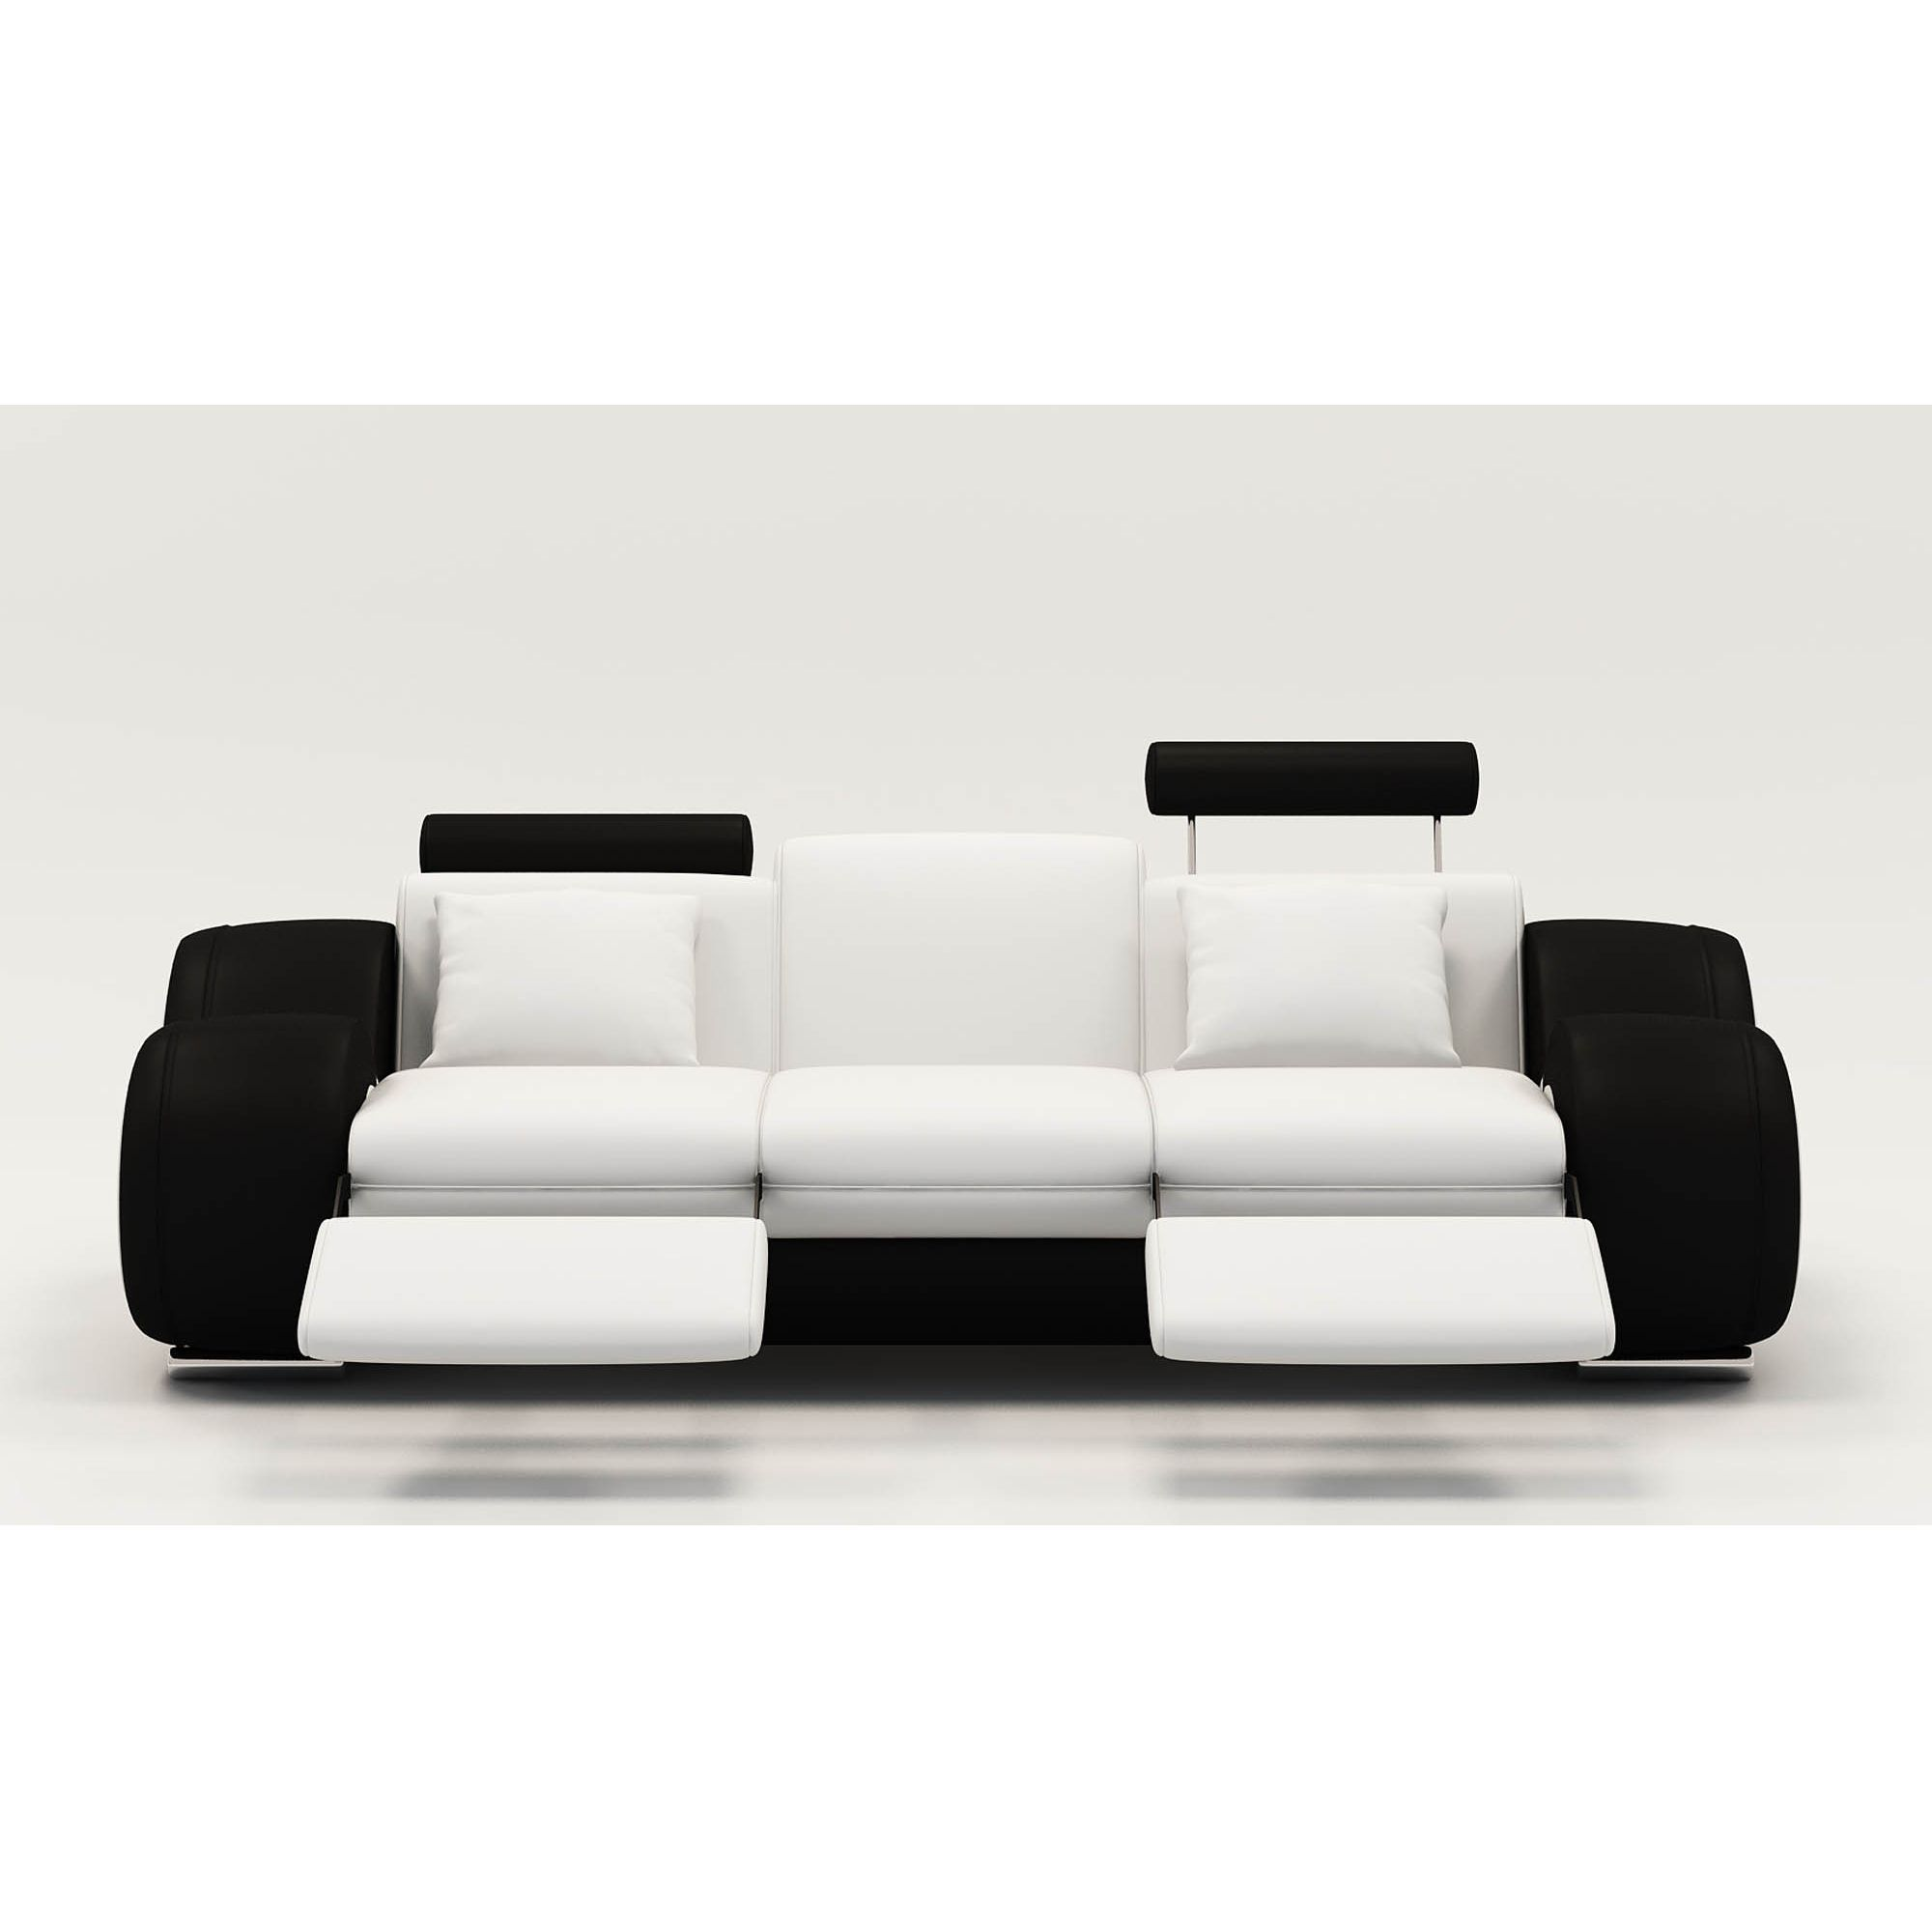 Deco in paris canape design 3 places cuir blanc et noir - Chaise noir et blanc design ...